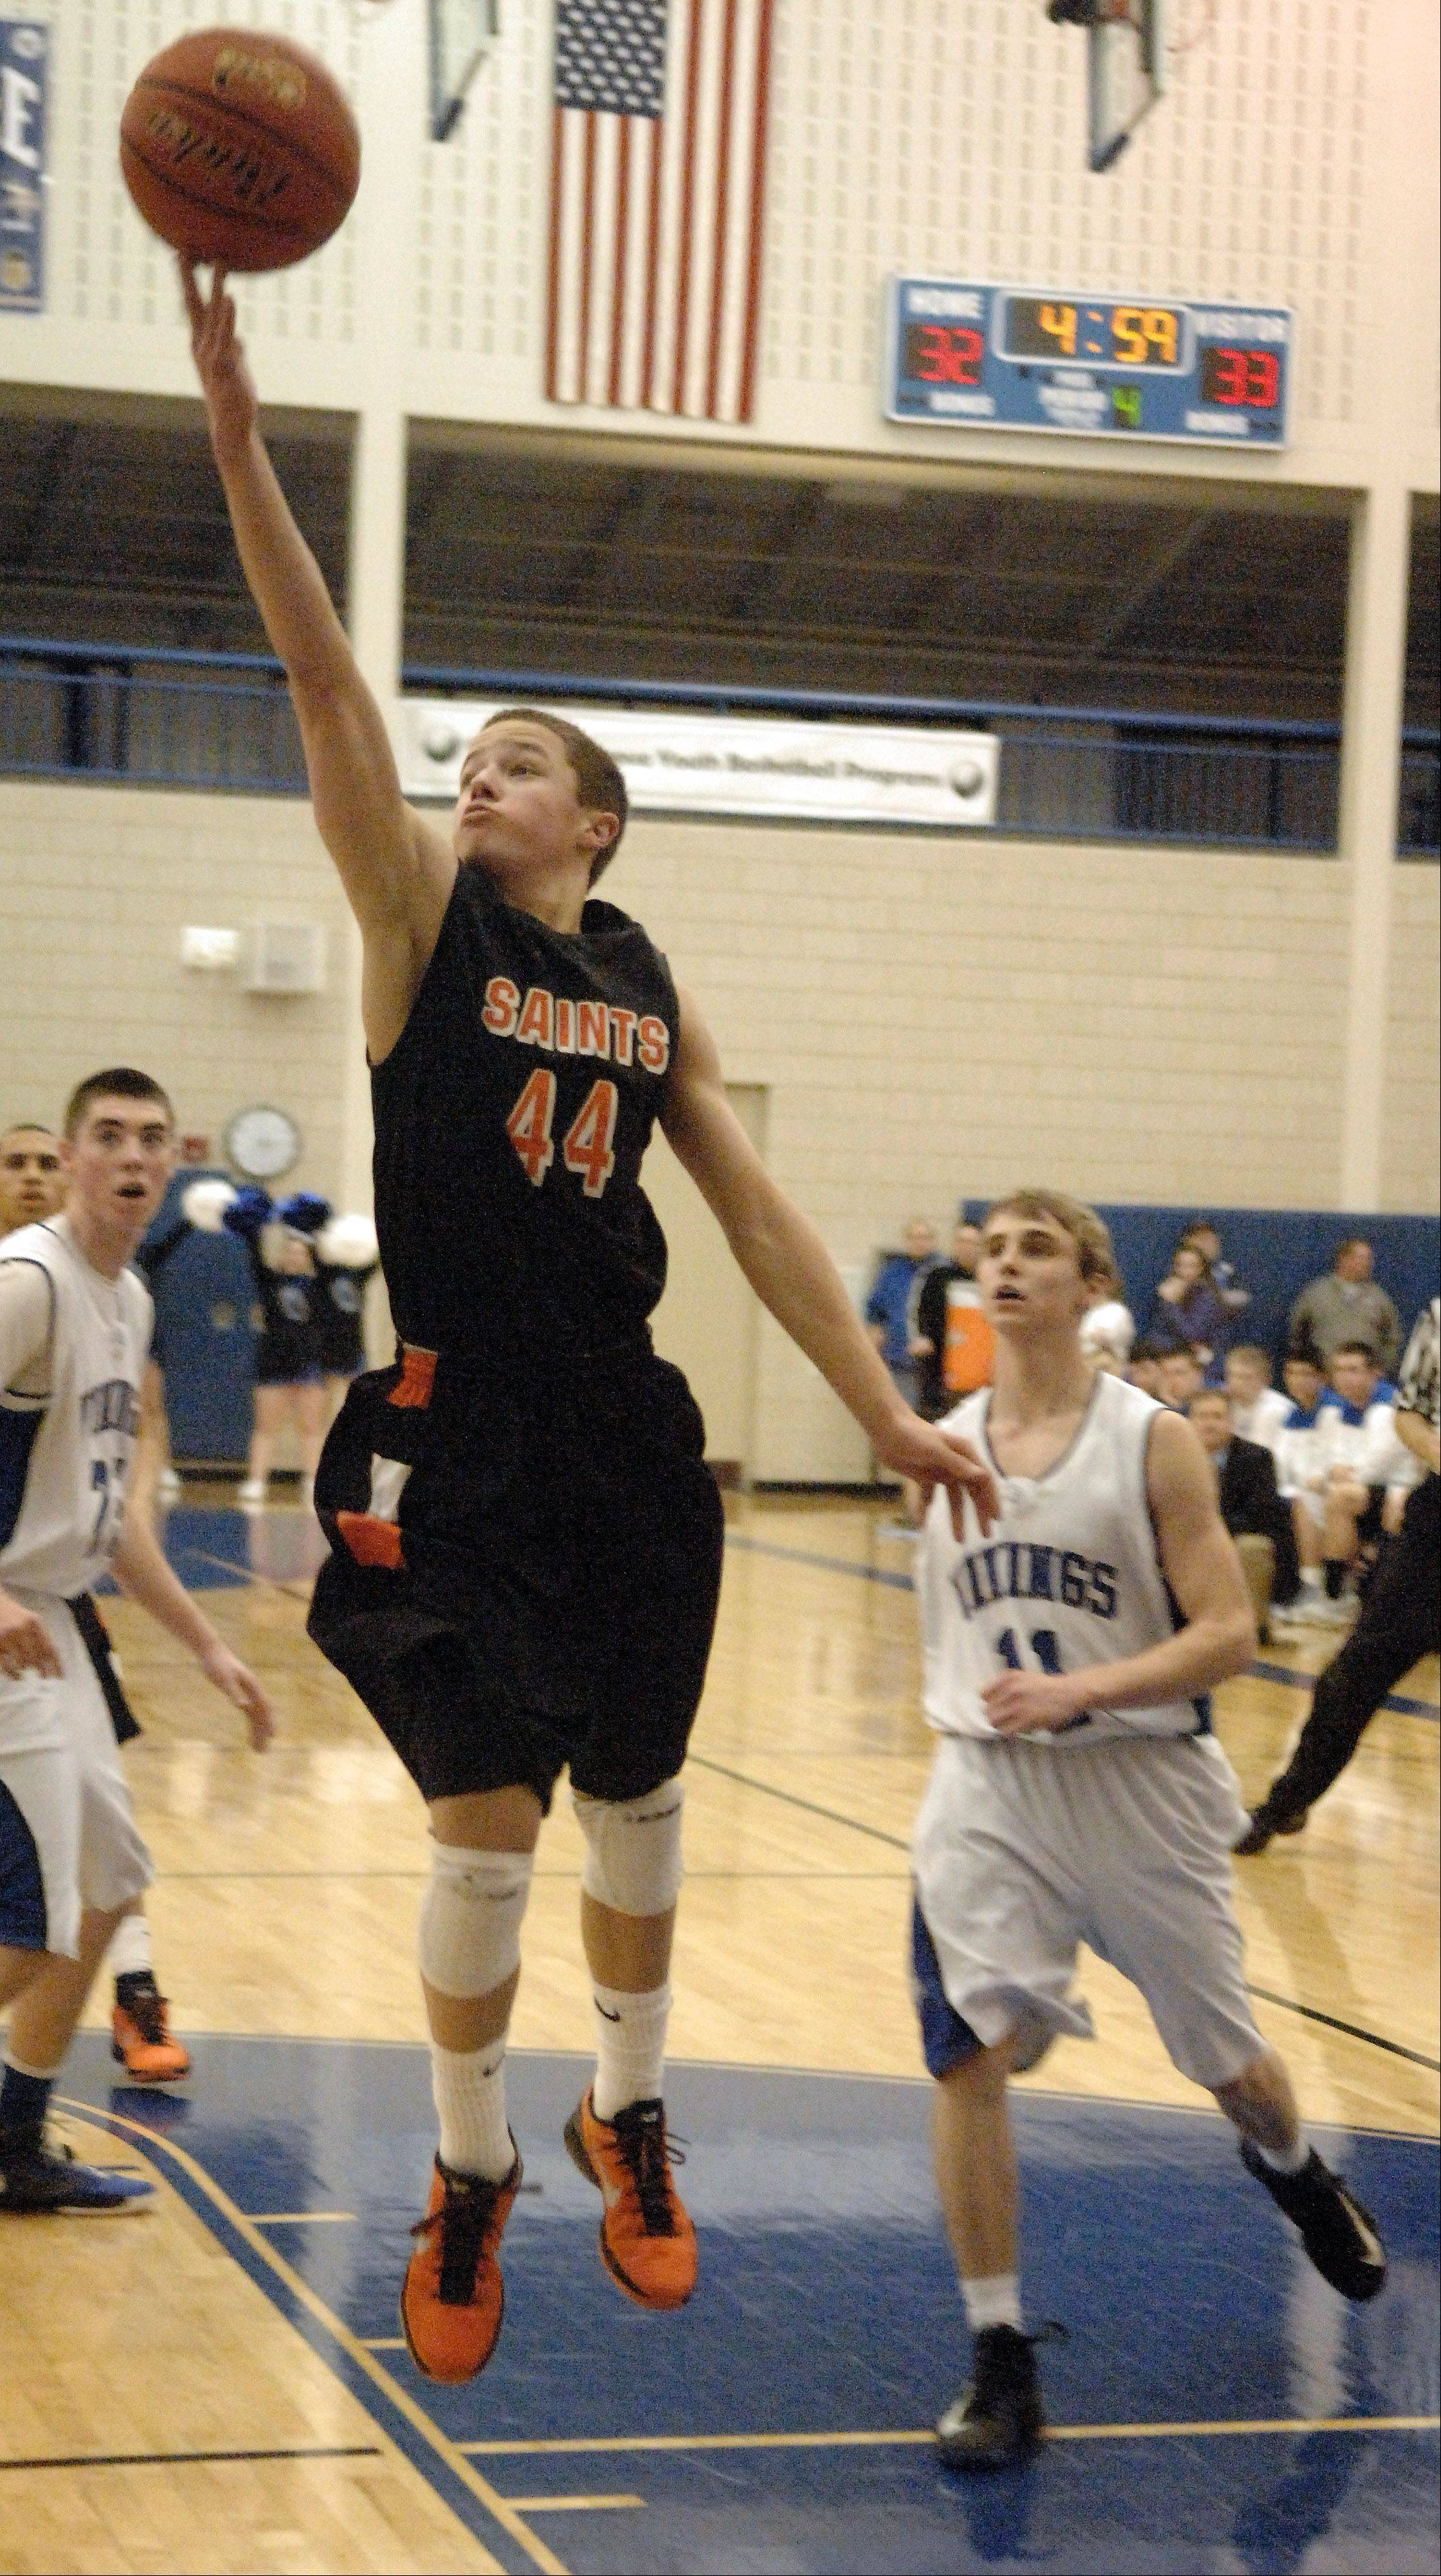 St. Charles East's Cole Gentry extends as he drives to the basket and scores.